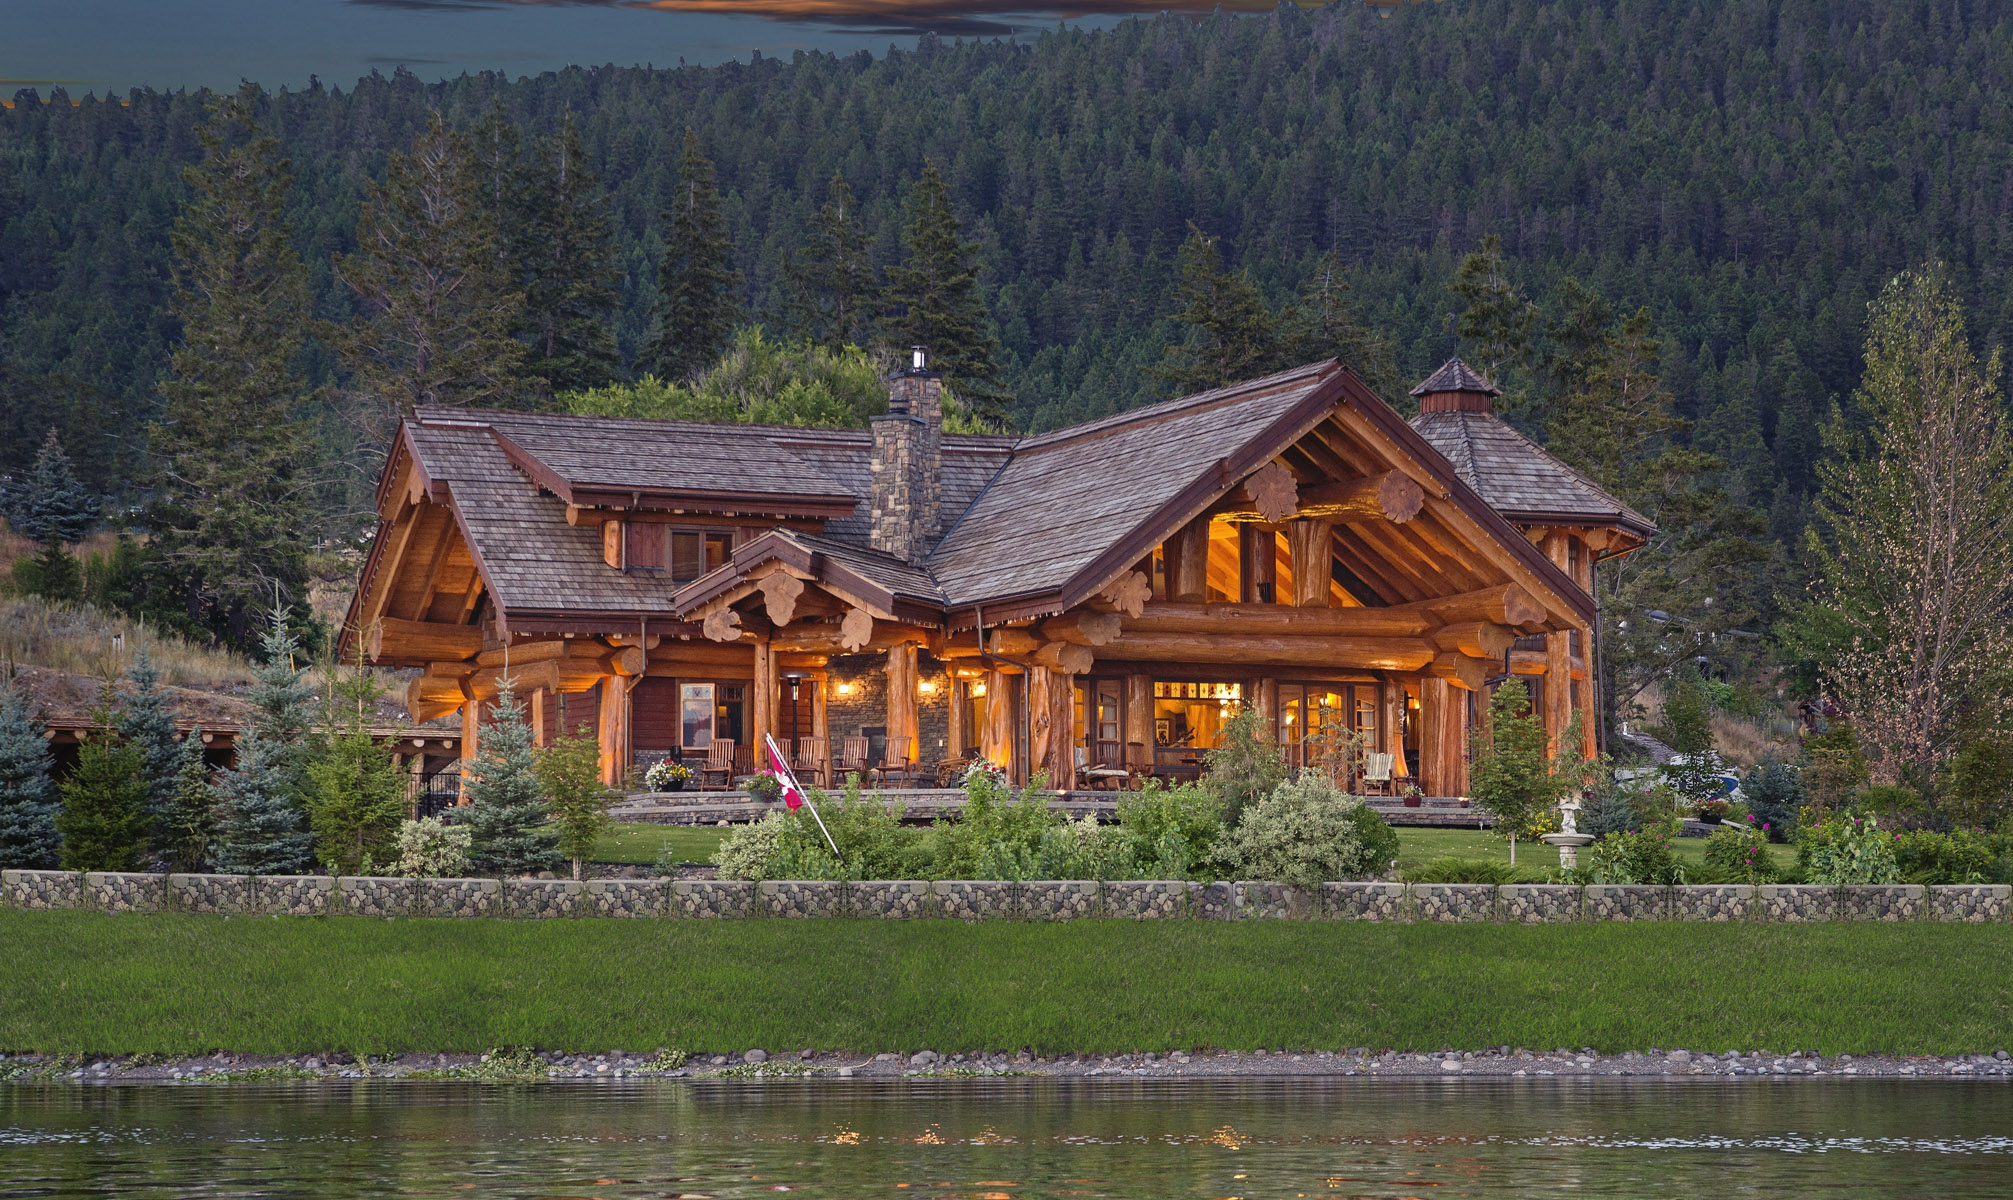 pioneer log homes of bc handcrafted log cabin plans and cedar log homes by pioneer log homes. Black Bedroom Furniture Sets. Home Design Ideas